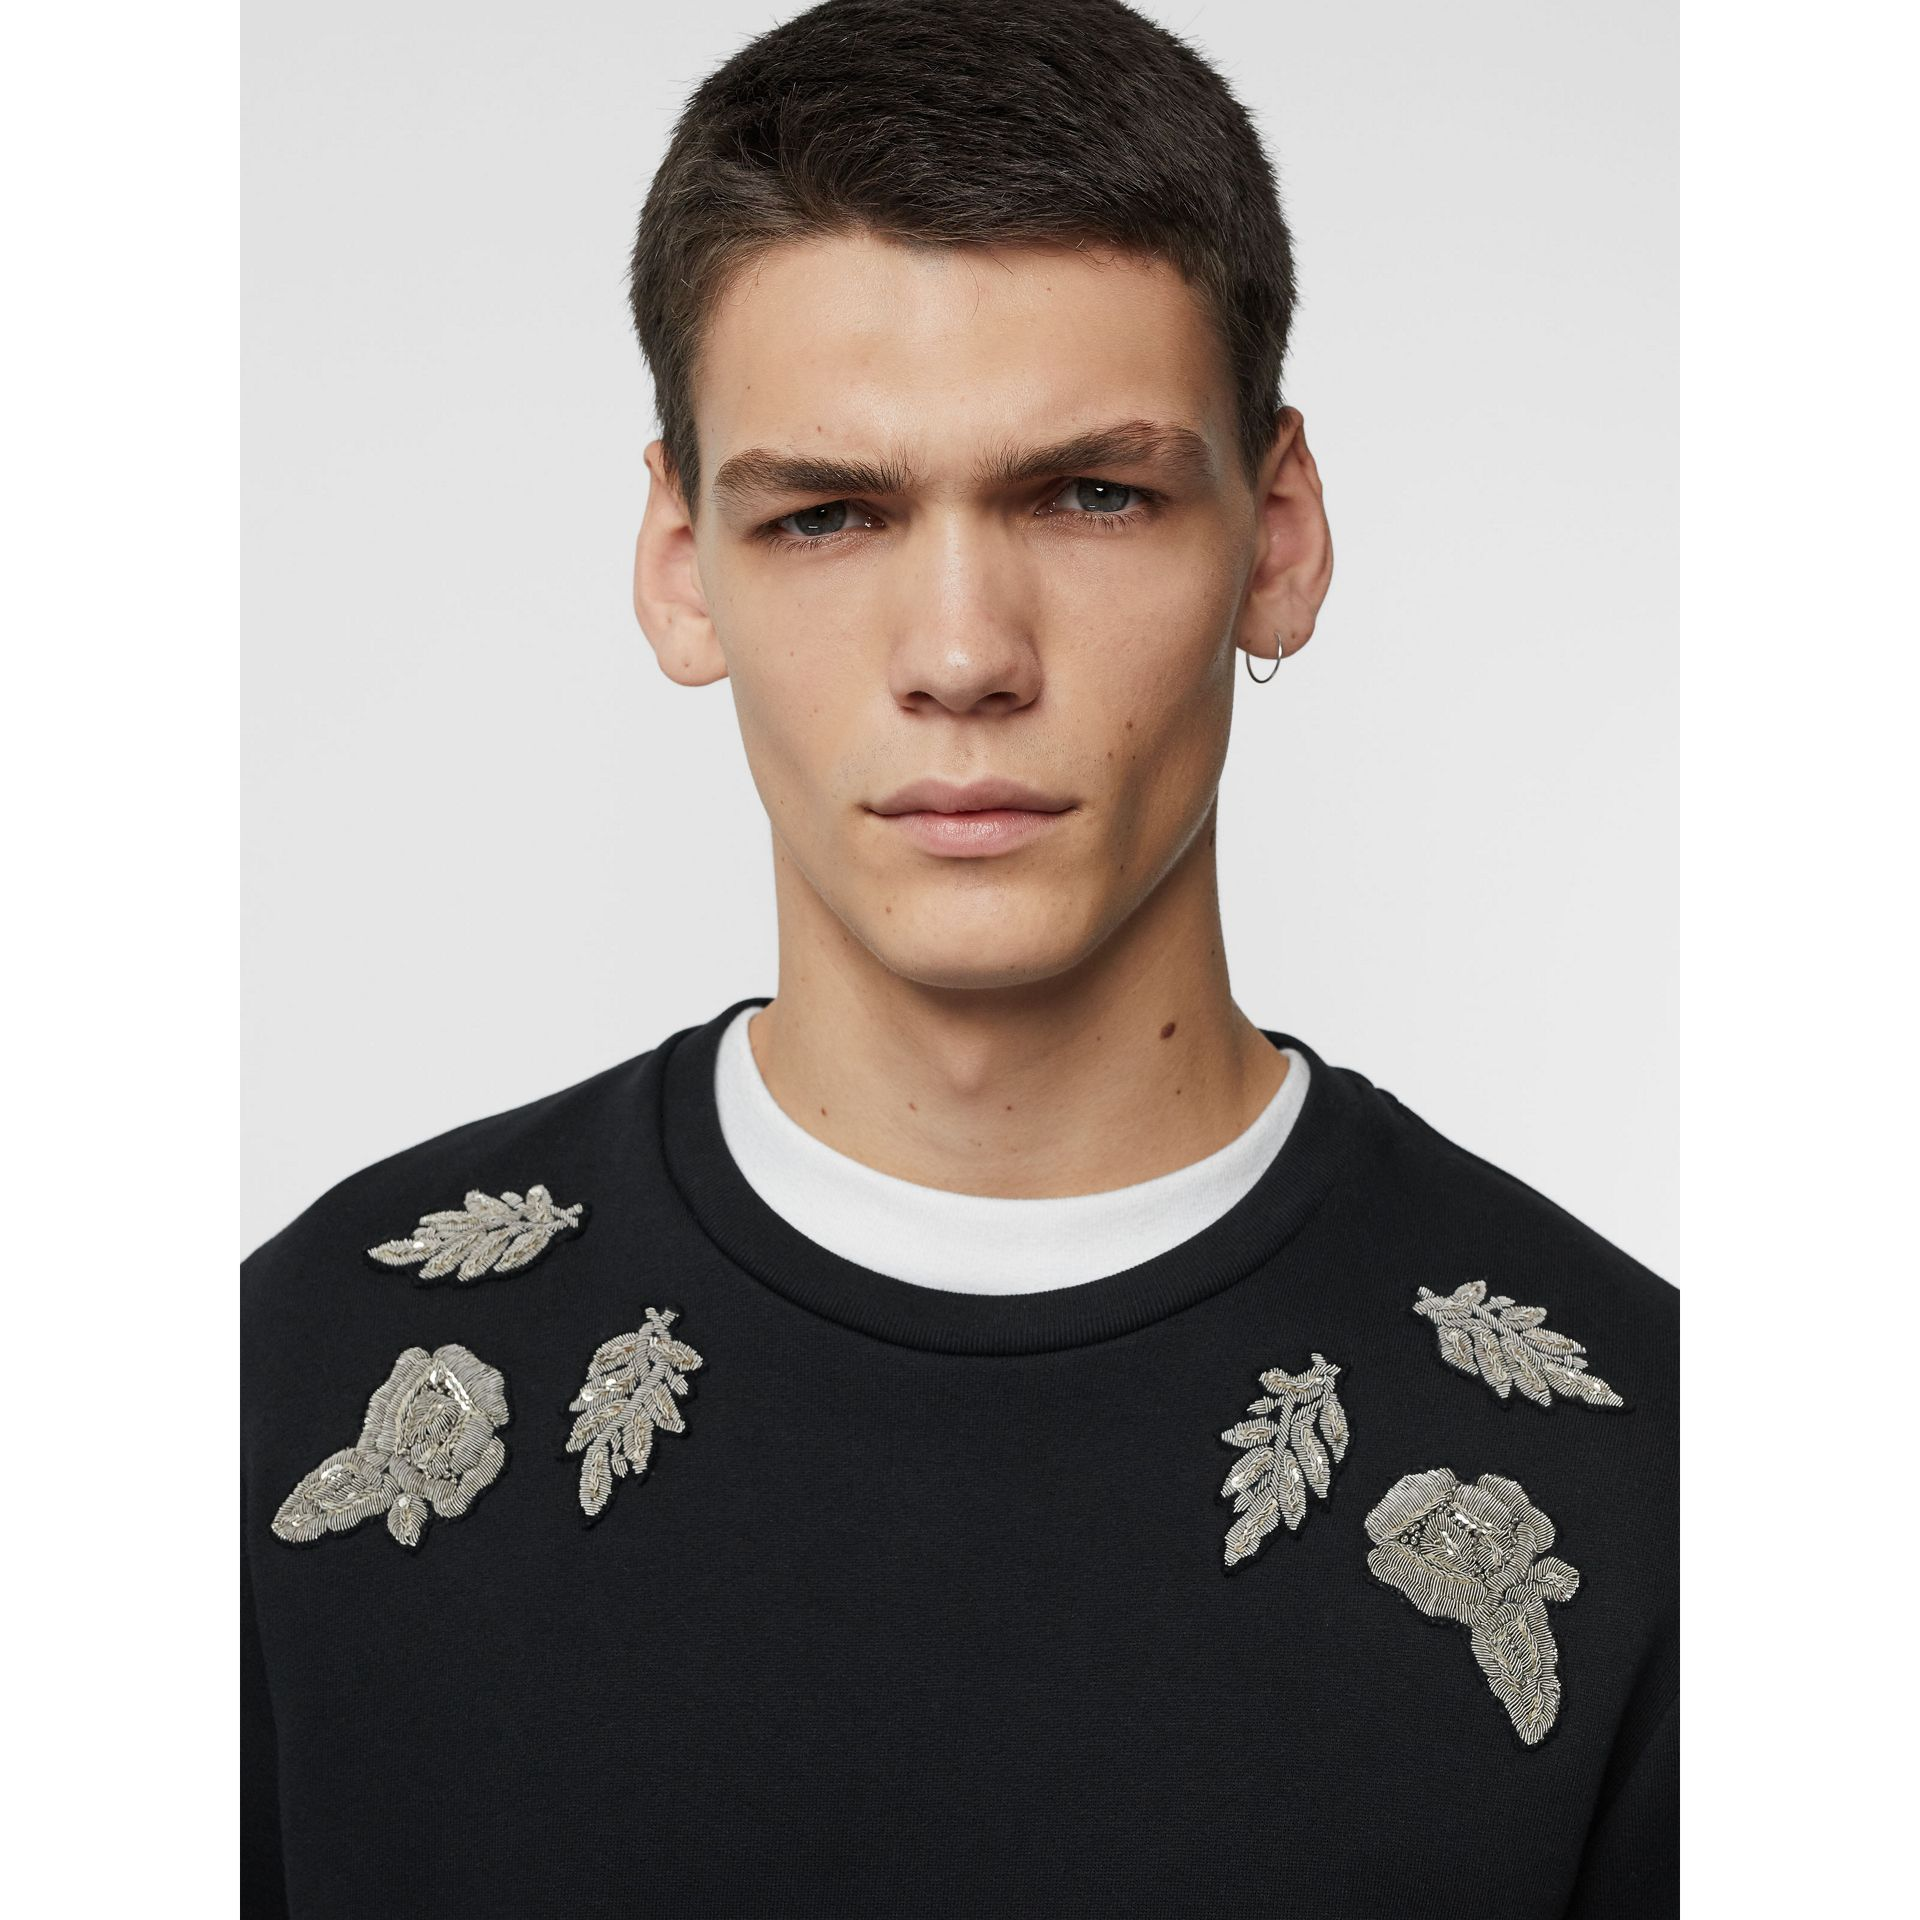 Bullion Floral Cotton Blend Sweatshirt in Black - Men | Burberry Australia - gallery image 1